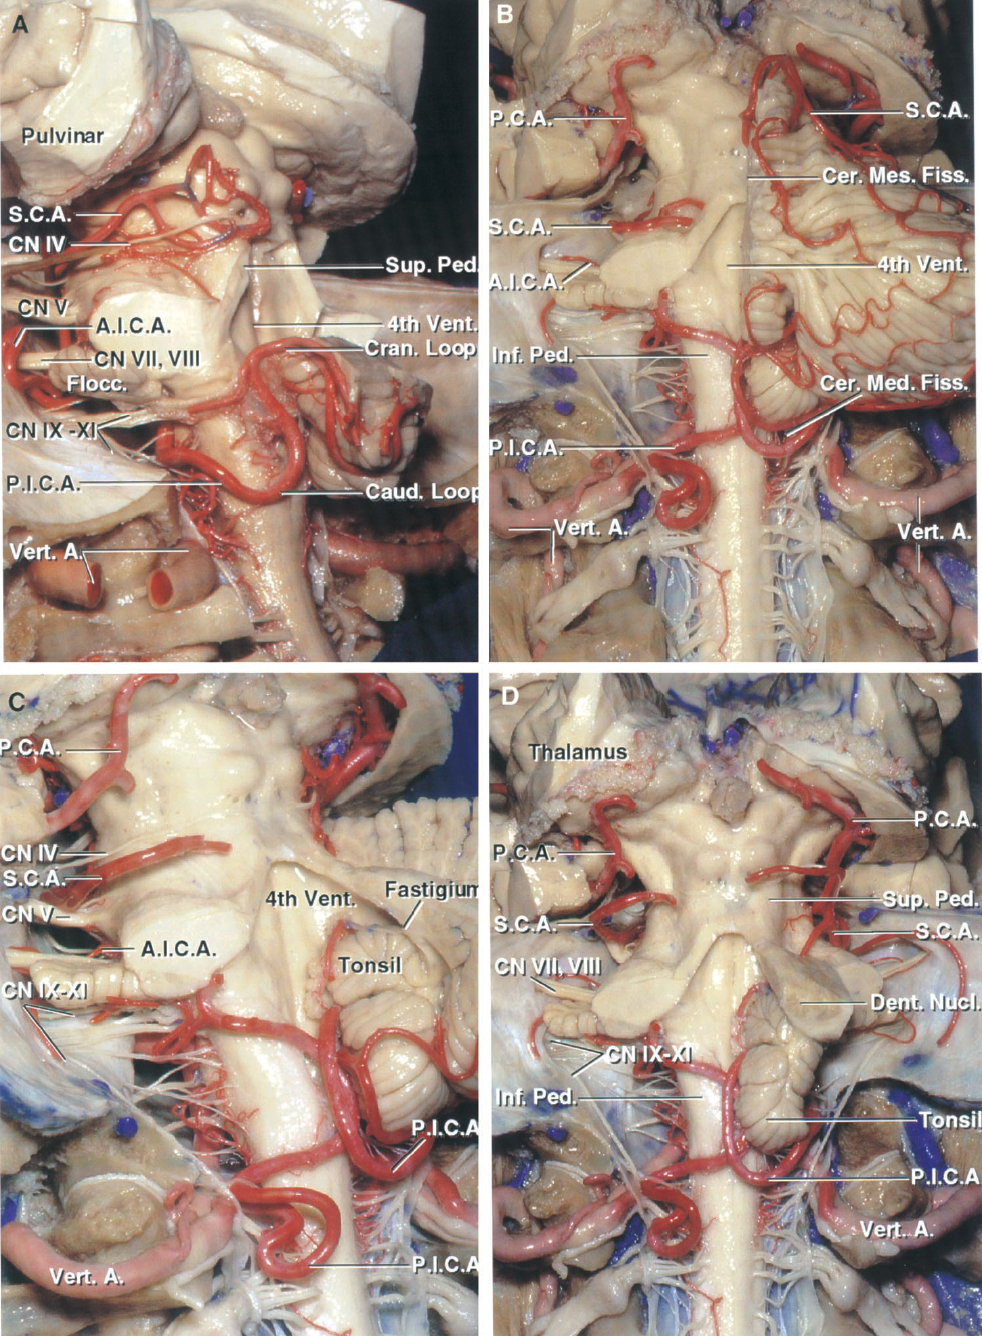 FIGURE 2.4. A–D. Cerebellar arteries, brainstem, and cerebellar-brainstem fissures. A, posterolateral view. The SCA passes around the midbrain to enter the cerebellomesencephalic fissure, where it sends perforating branches into the posterior midbrain below a line between the superior and inferior colliculi, and down the superior peduncle to the dentate nucleus. The AICA loops around the flocculus and the facial and vestibulocochlear nerves. The left PICA passes between the rootlets of the nerves entering the jugular foramen and turns caudally around the lower pole of the left tonsil, which has been removed, and then ascends to form a cranial loop at the upper pole of the tonsil bordering the inferior half of the ventricular roof. B, another specimen. The left half of the cerebellum has been removed. The SCA passes around the midbrain below the PCA in the lower part of the ambient and quadrigeminal cisterns, enters the cerebellomesencephalic fissure, and loops over the posterior lip of the fissure to supply the tentorial surface. The PICA arises from the vertebral artery, passes around the medulla, crosses the inferior cerebellar peduncle, and enters the cerebellomedullary fissure, where it passes along the inferior half of the ventricular roof, and exits the fissure to supply the suboccipital surface. The AICA passes laterally around the pons and above the flocculus. C, enlarged oblique view. The right PICA loops around the caudal and rostral poles of the tonsil. The left PICA dips below the level of the foramen magnum. D, posterior view after removing all of the cerebellum except for the right tonsil and dentate nucleus. A., artery; A.I.C.A., anteroinferior cerebellar artery; Caud., caudal; Cer. Med., cerebellomedullary; Cer. Mes., cerebellomesencephalic; Chor., choroid; CN, cranial nerve; Cran., cranial; Dent., dentate; Fiss., fissure; Flocc., flocculus; Inf., inferior; Mid., middle; Nucl., nucleus; P.C.A., posterior cerebral artery; Ped., peduncle; P.I.C.A., pos